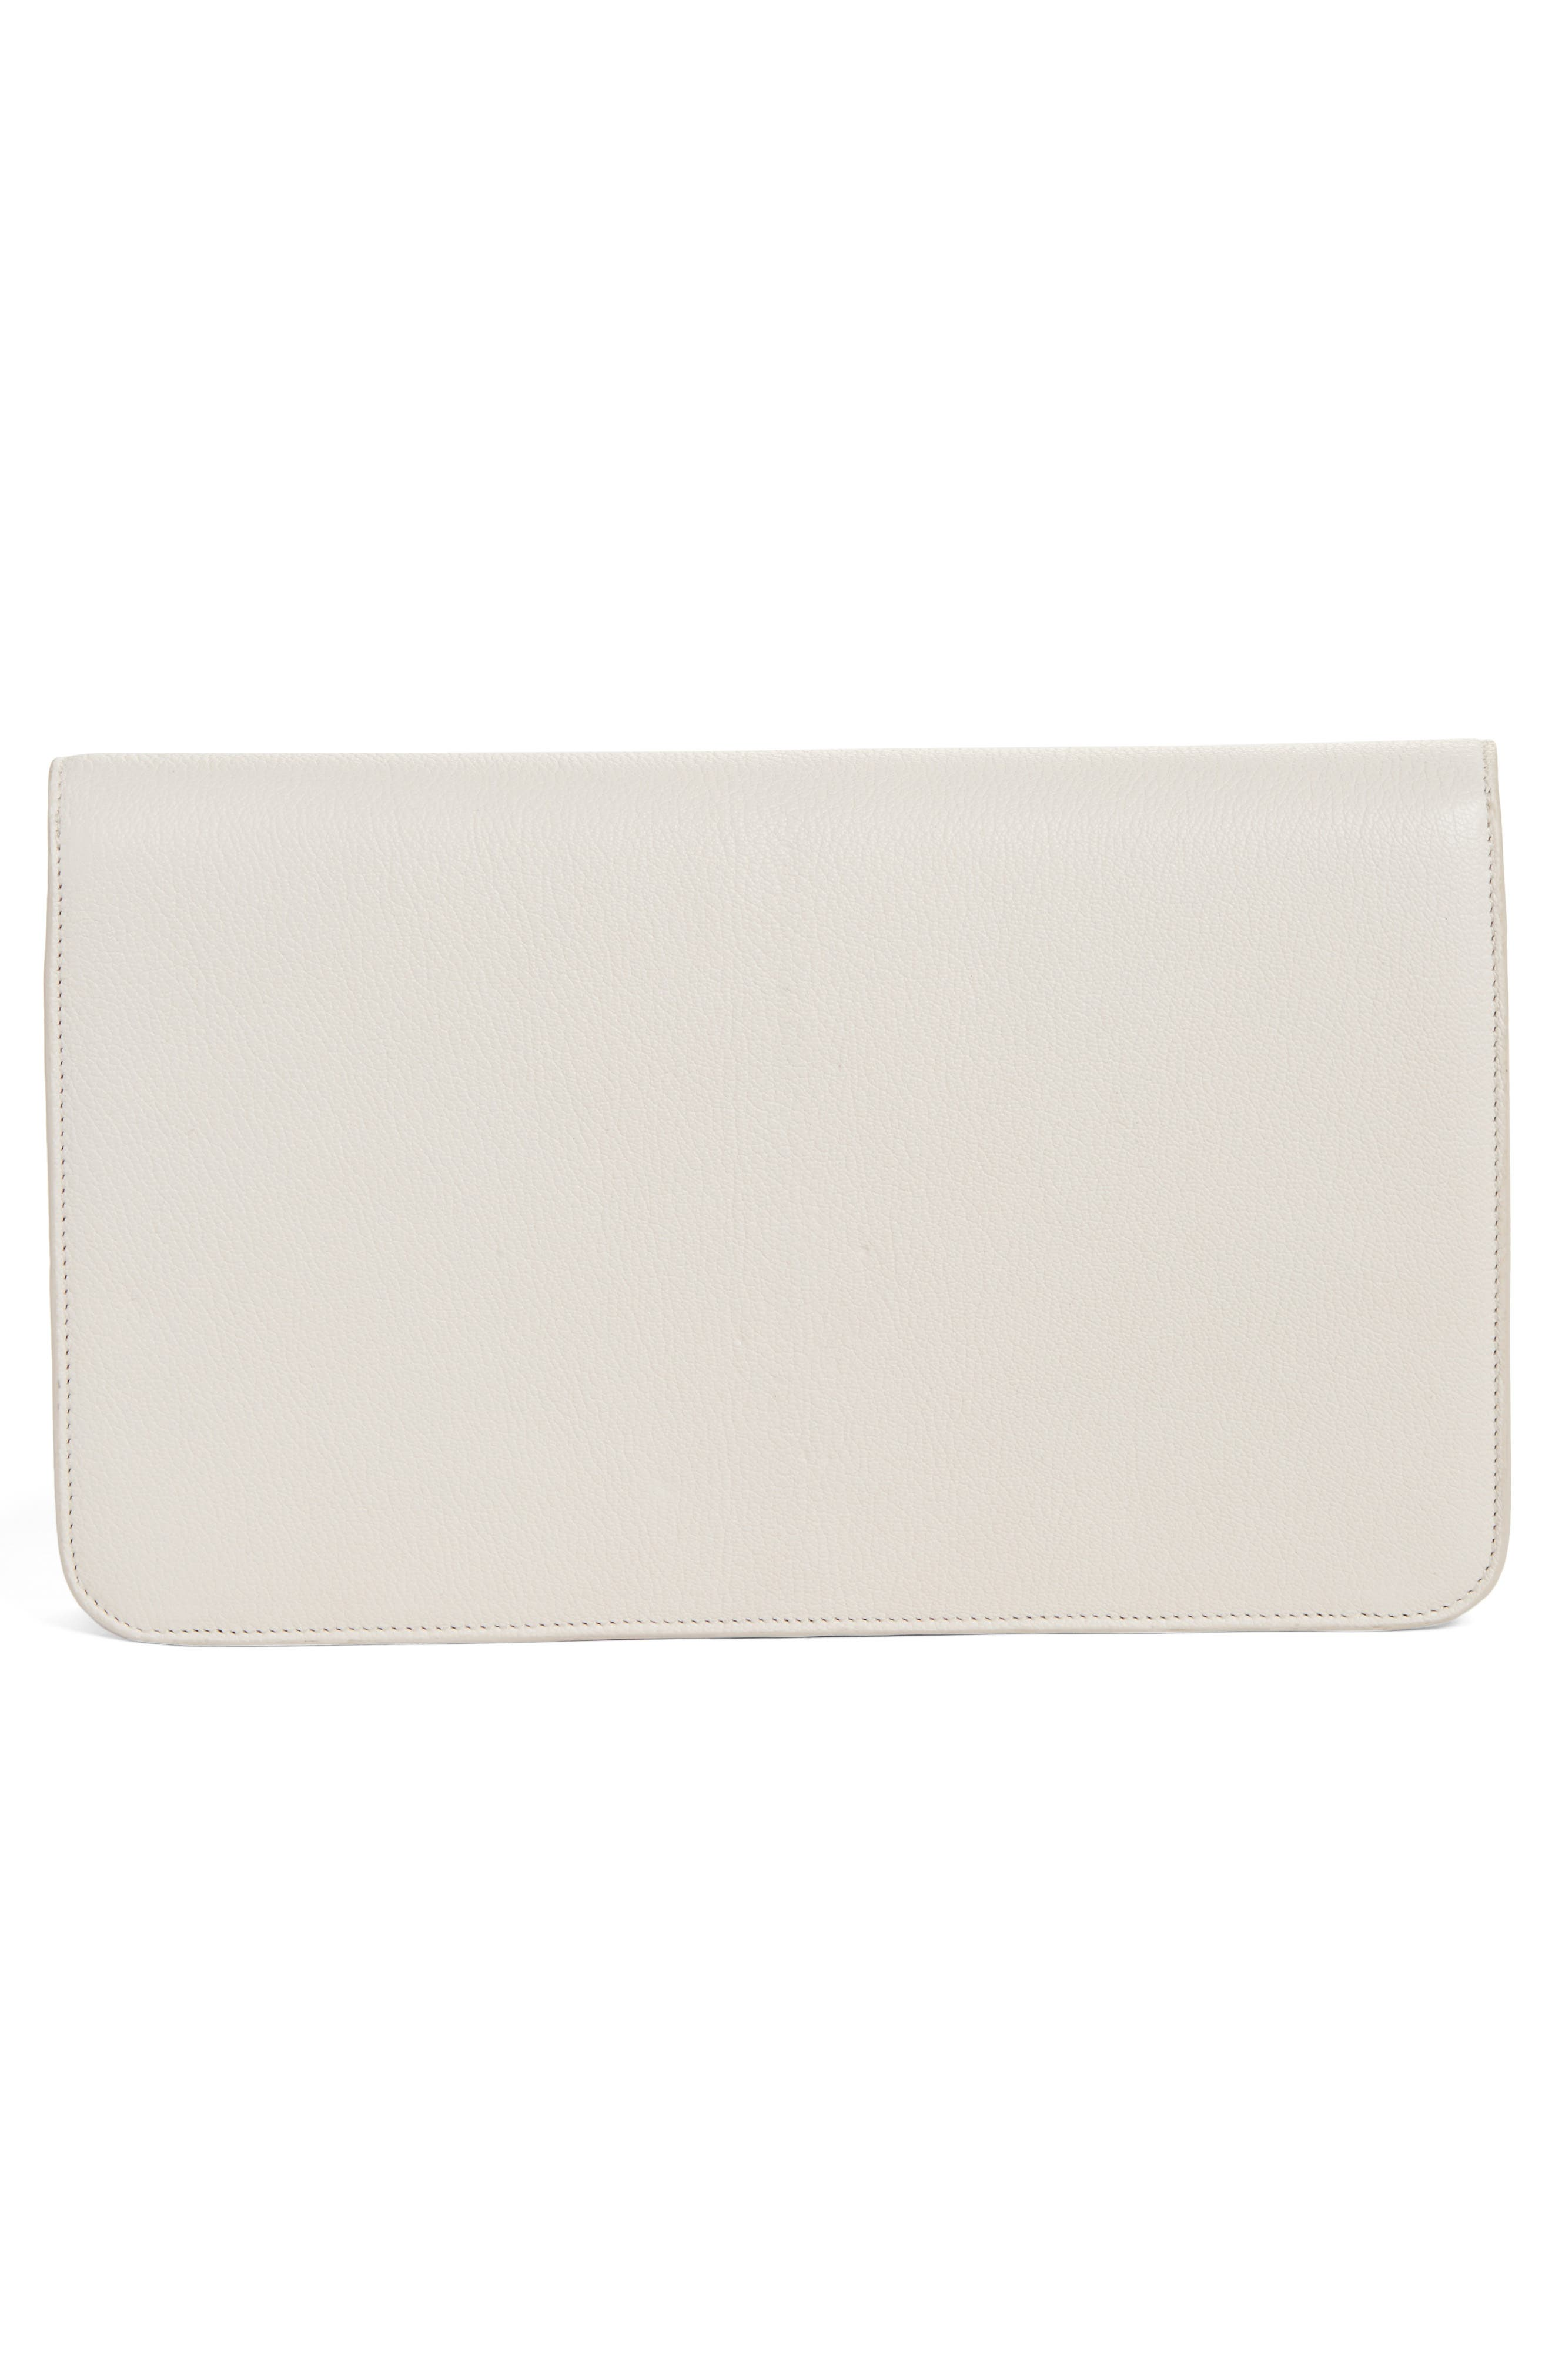 Heart Leather Clutch,                             Alternate thumbnail 3, color,                             Off White